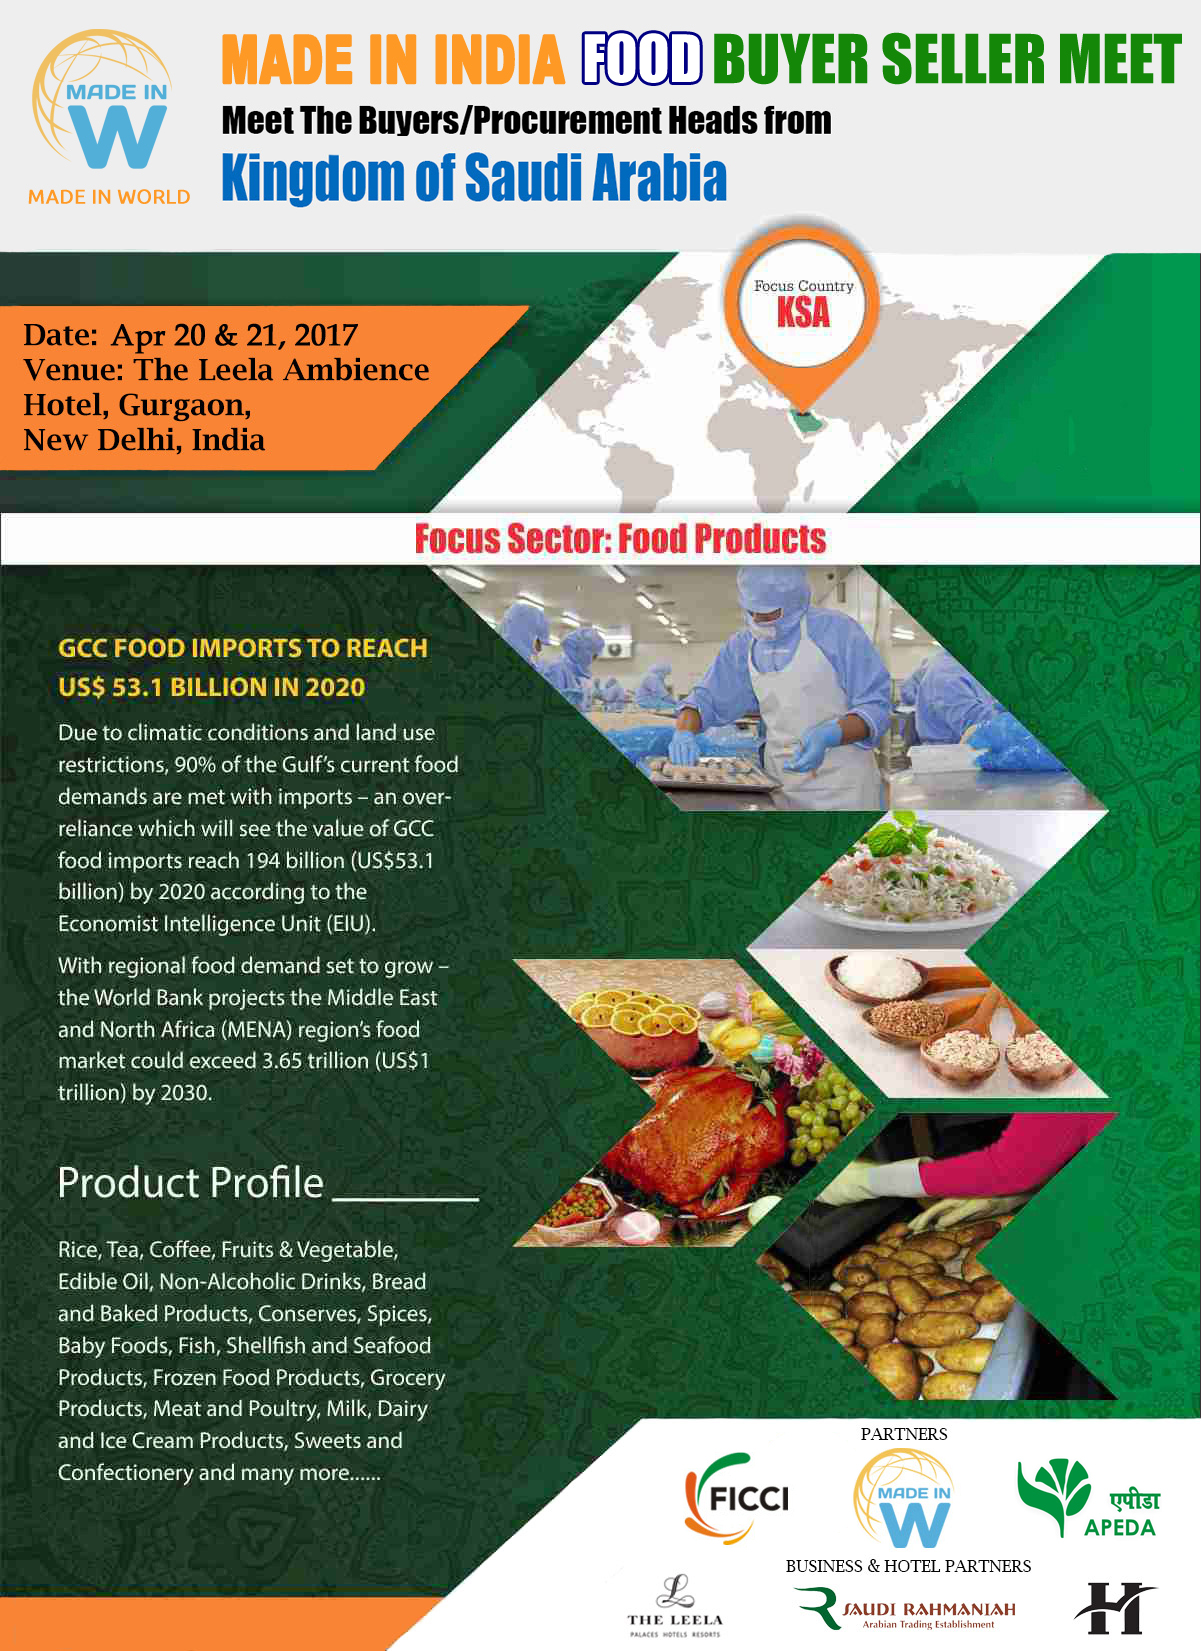 Food-B2B-Meet-Made-in-India-Flyer